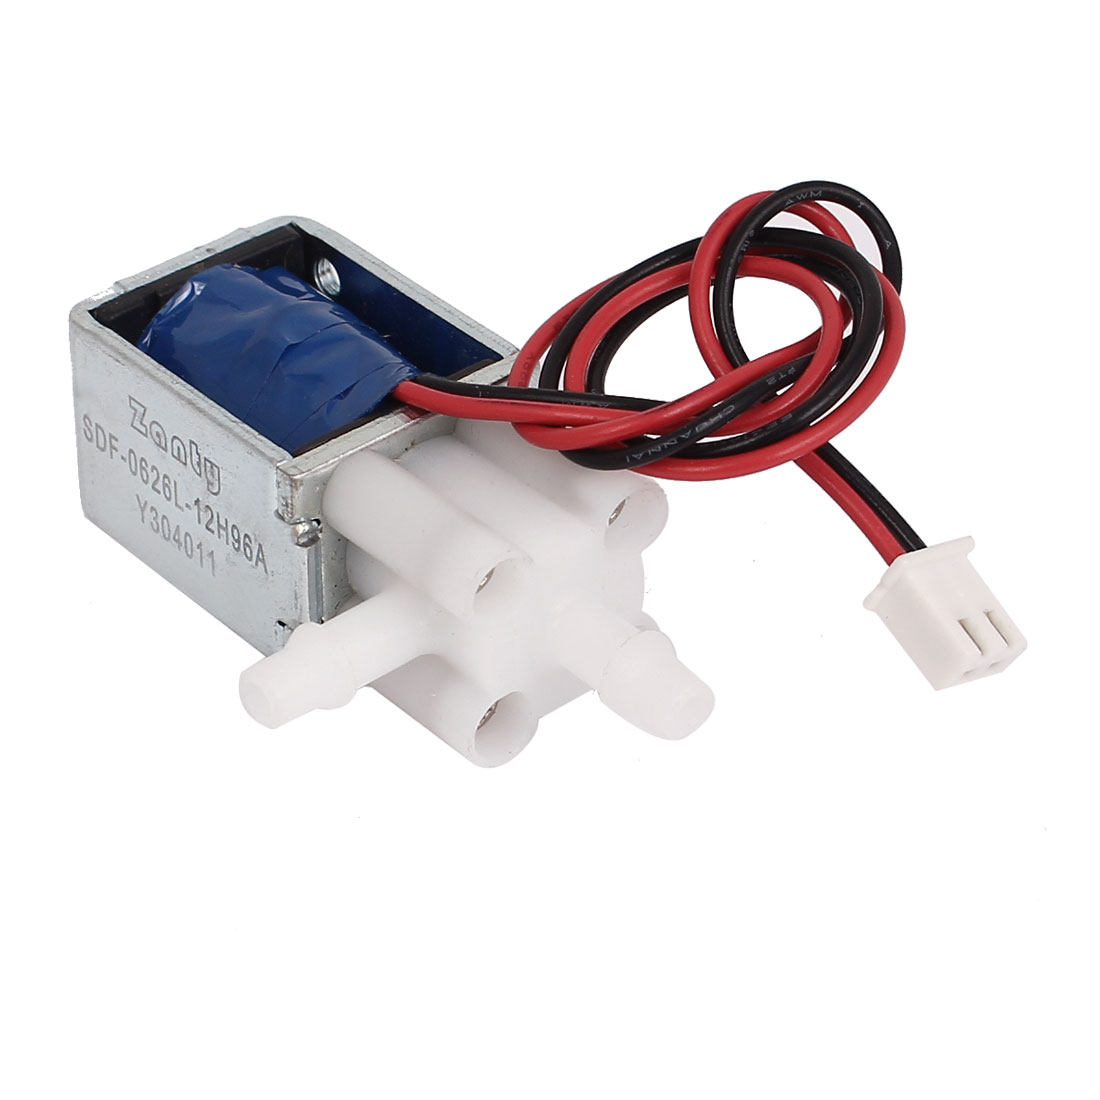 8-2-Pin-Connecting-2-Outlet-Electromagnet-Solenoid-Valve-DC-12V-1-5W